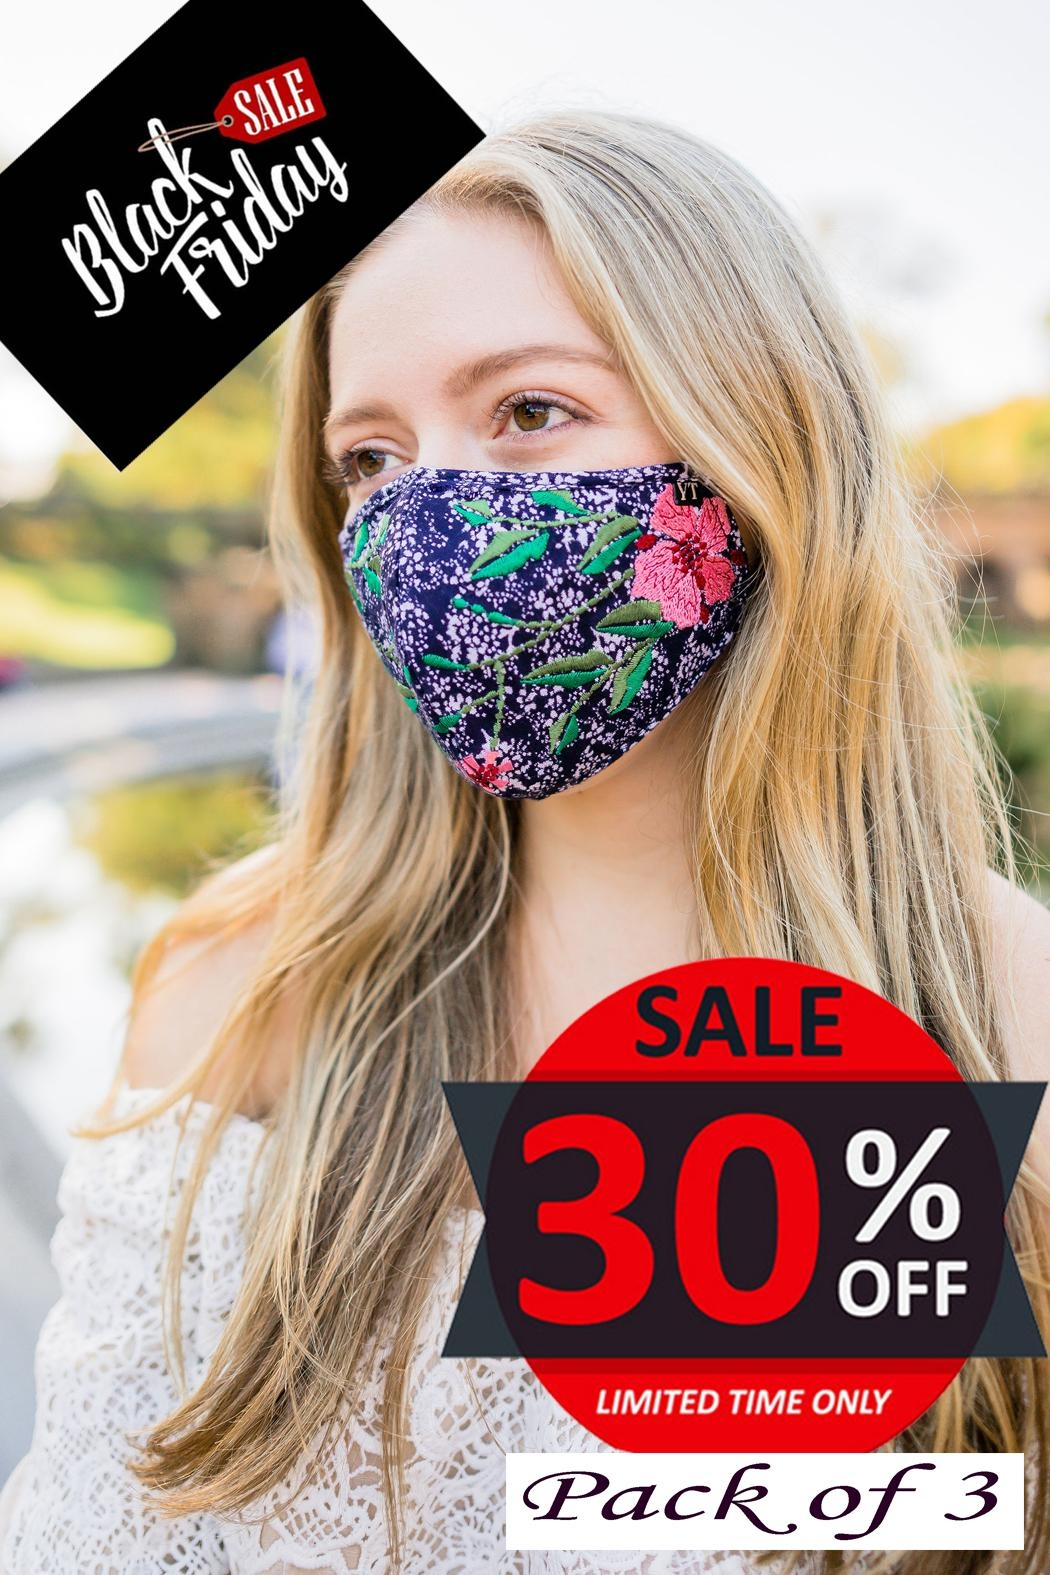 Young Threads Holiday Embroidered Face Mask, 3layered, Nose Pin, Adjustable Ear Loops Pack Of 3 - Main Image